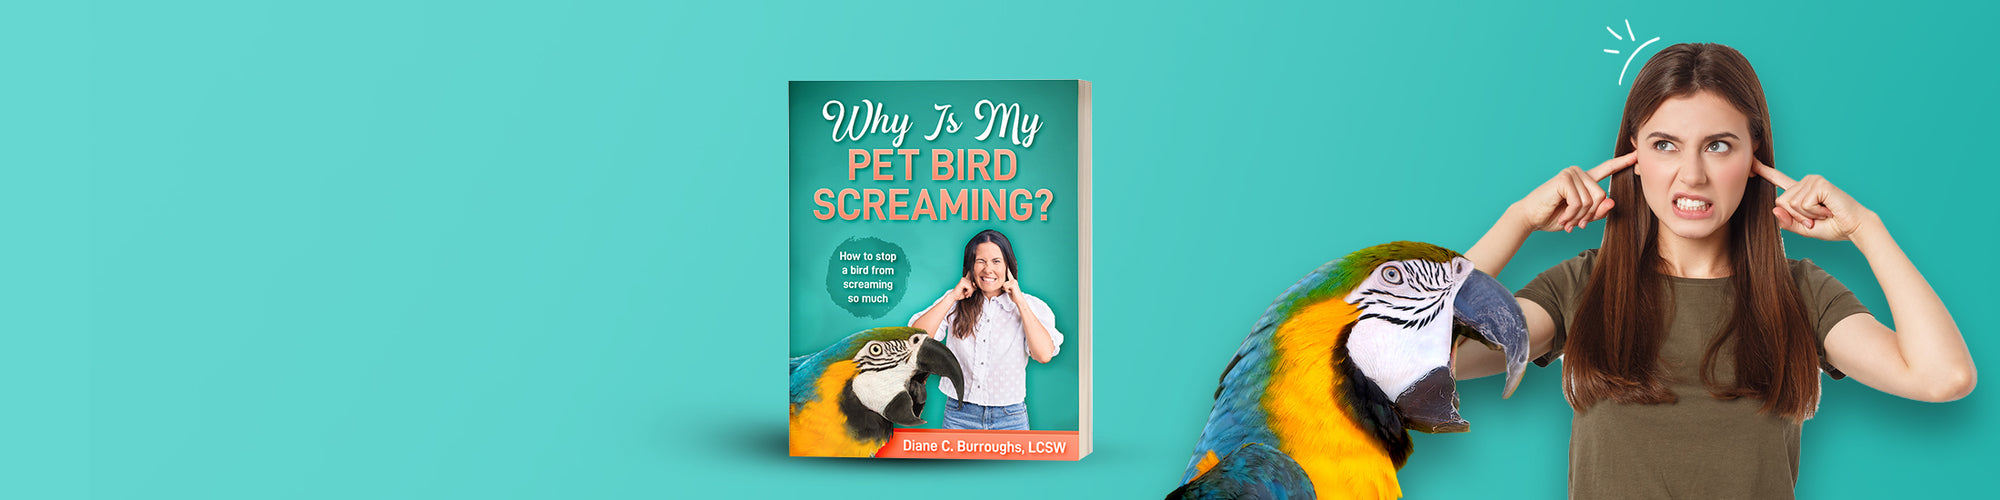 why does my bird scream?